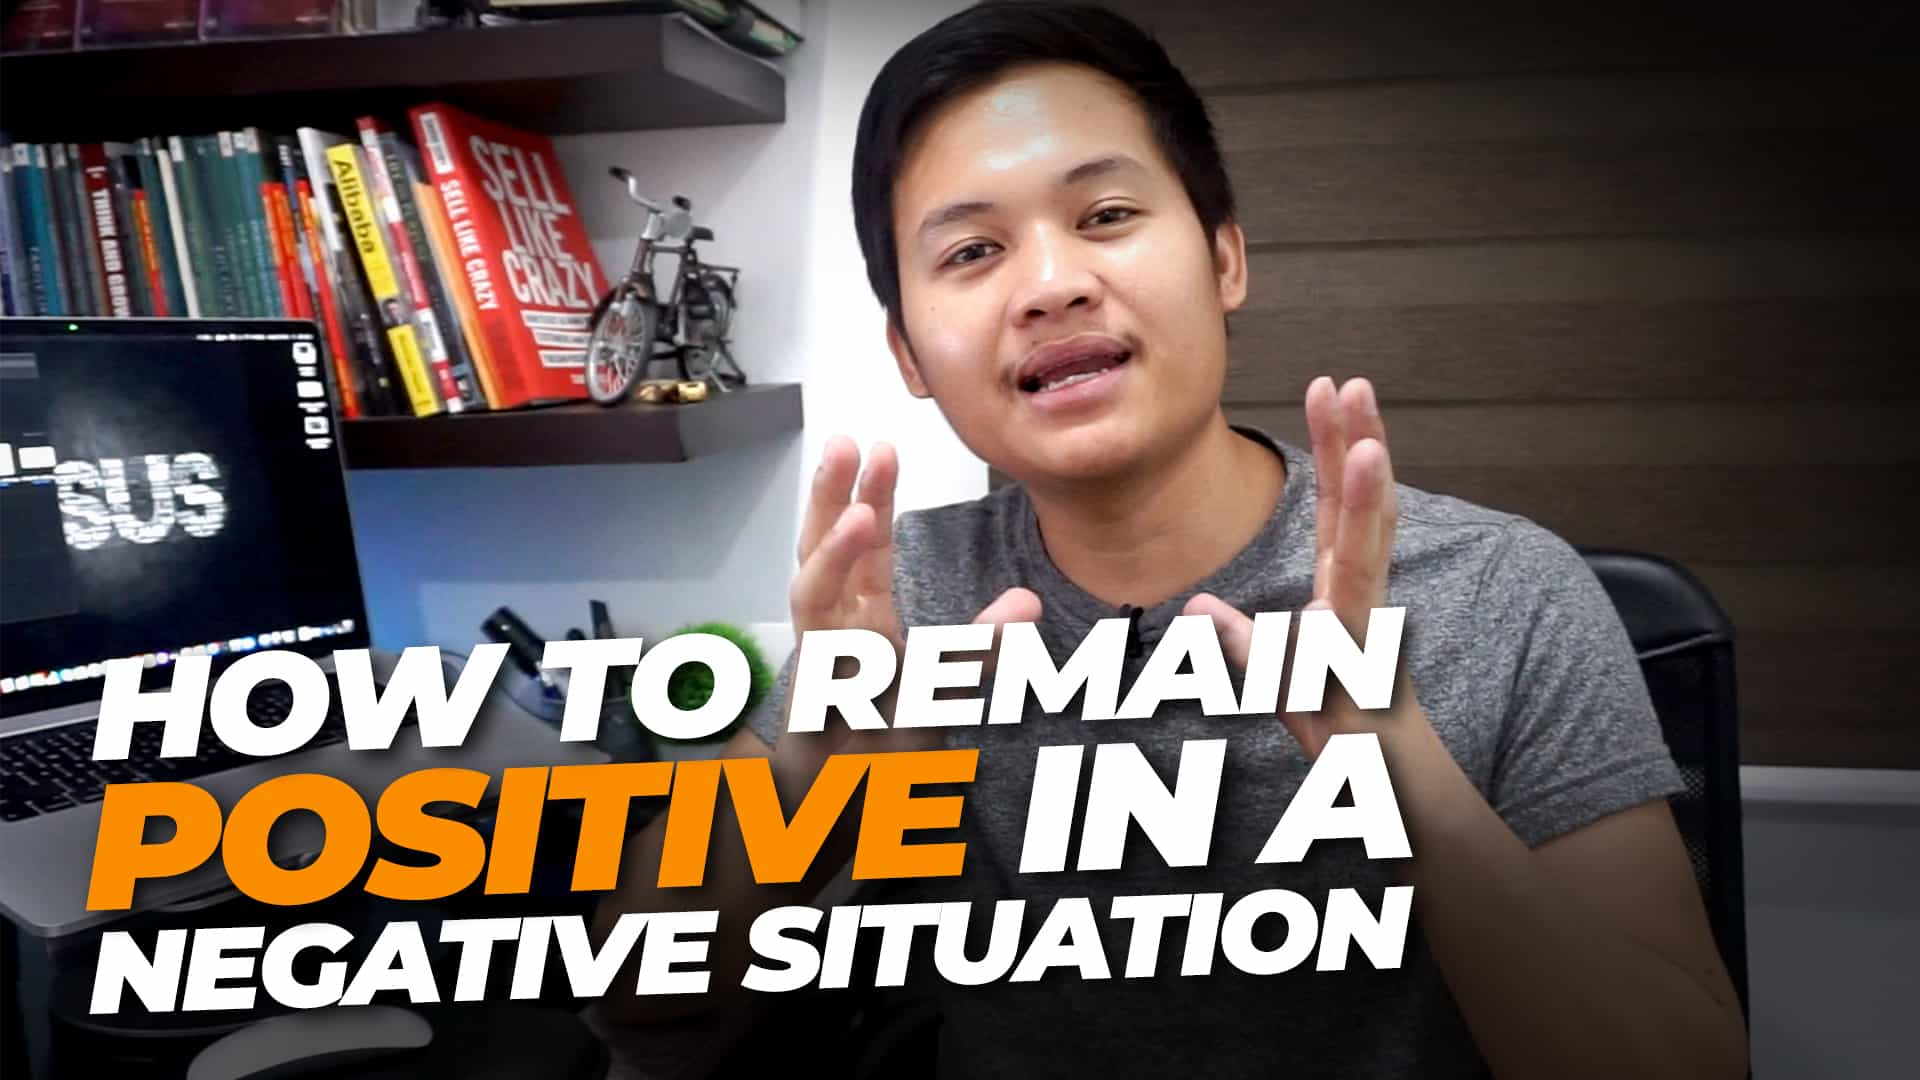 HOW TO REMAIN POSITIVE